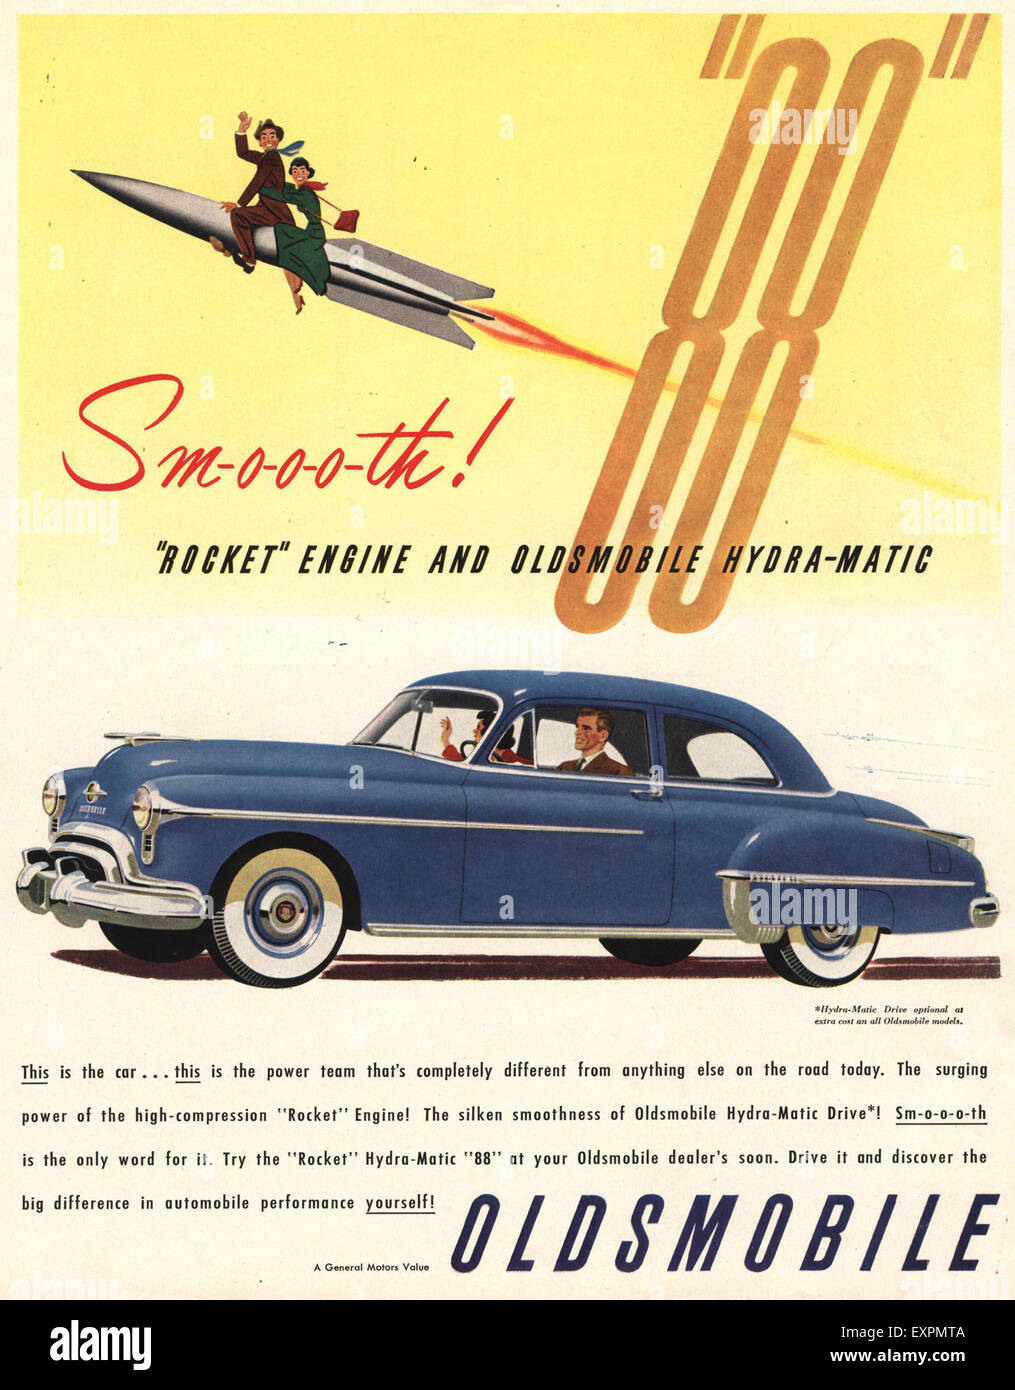 1950s usa oldsmobile general motors magazine advert stock for General motors stock history